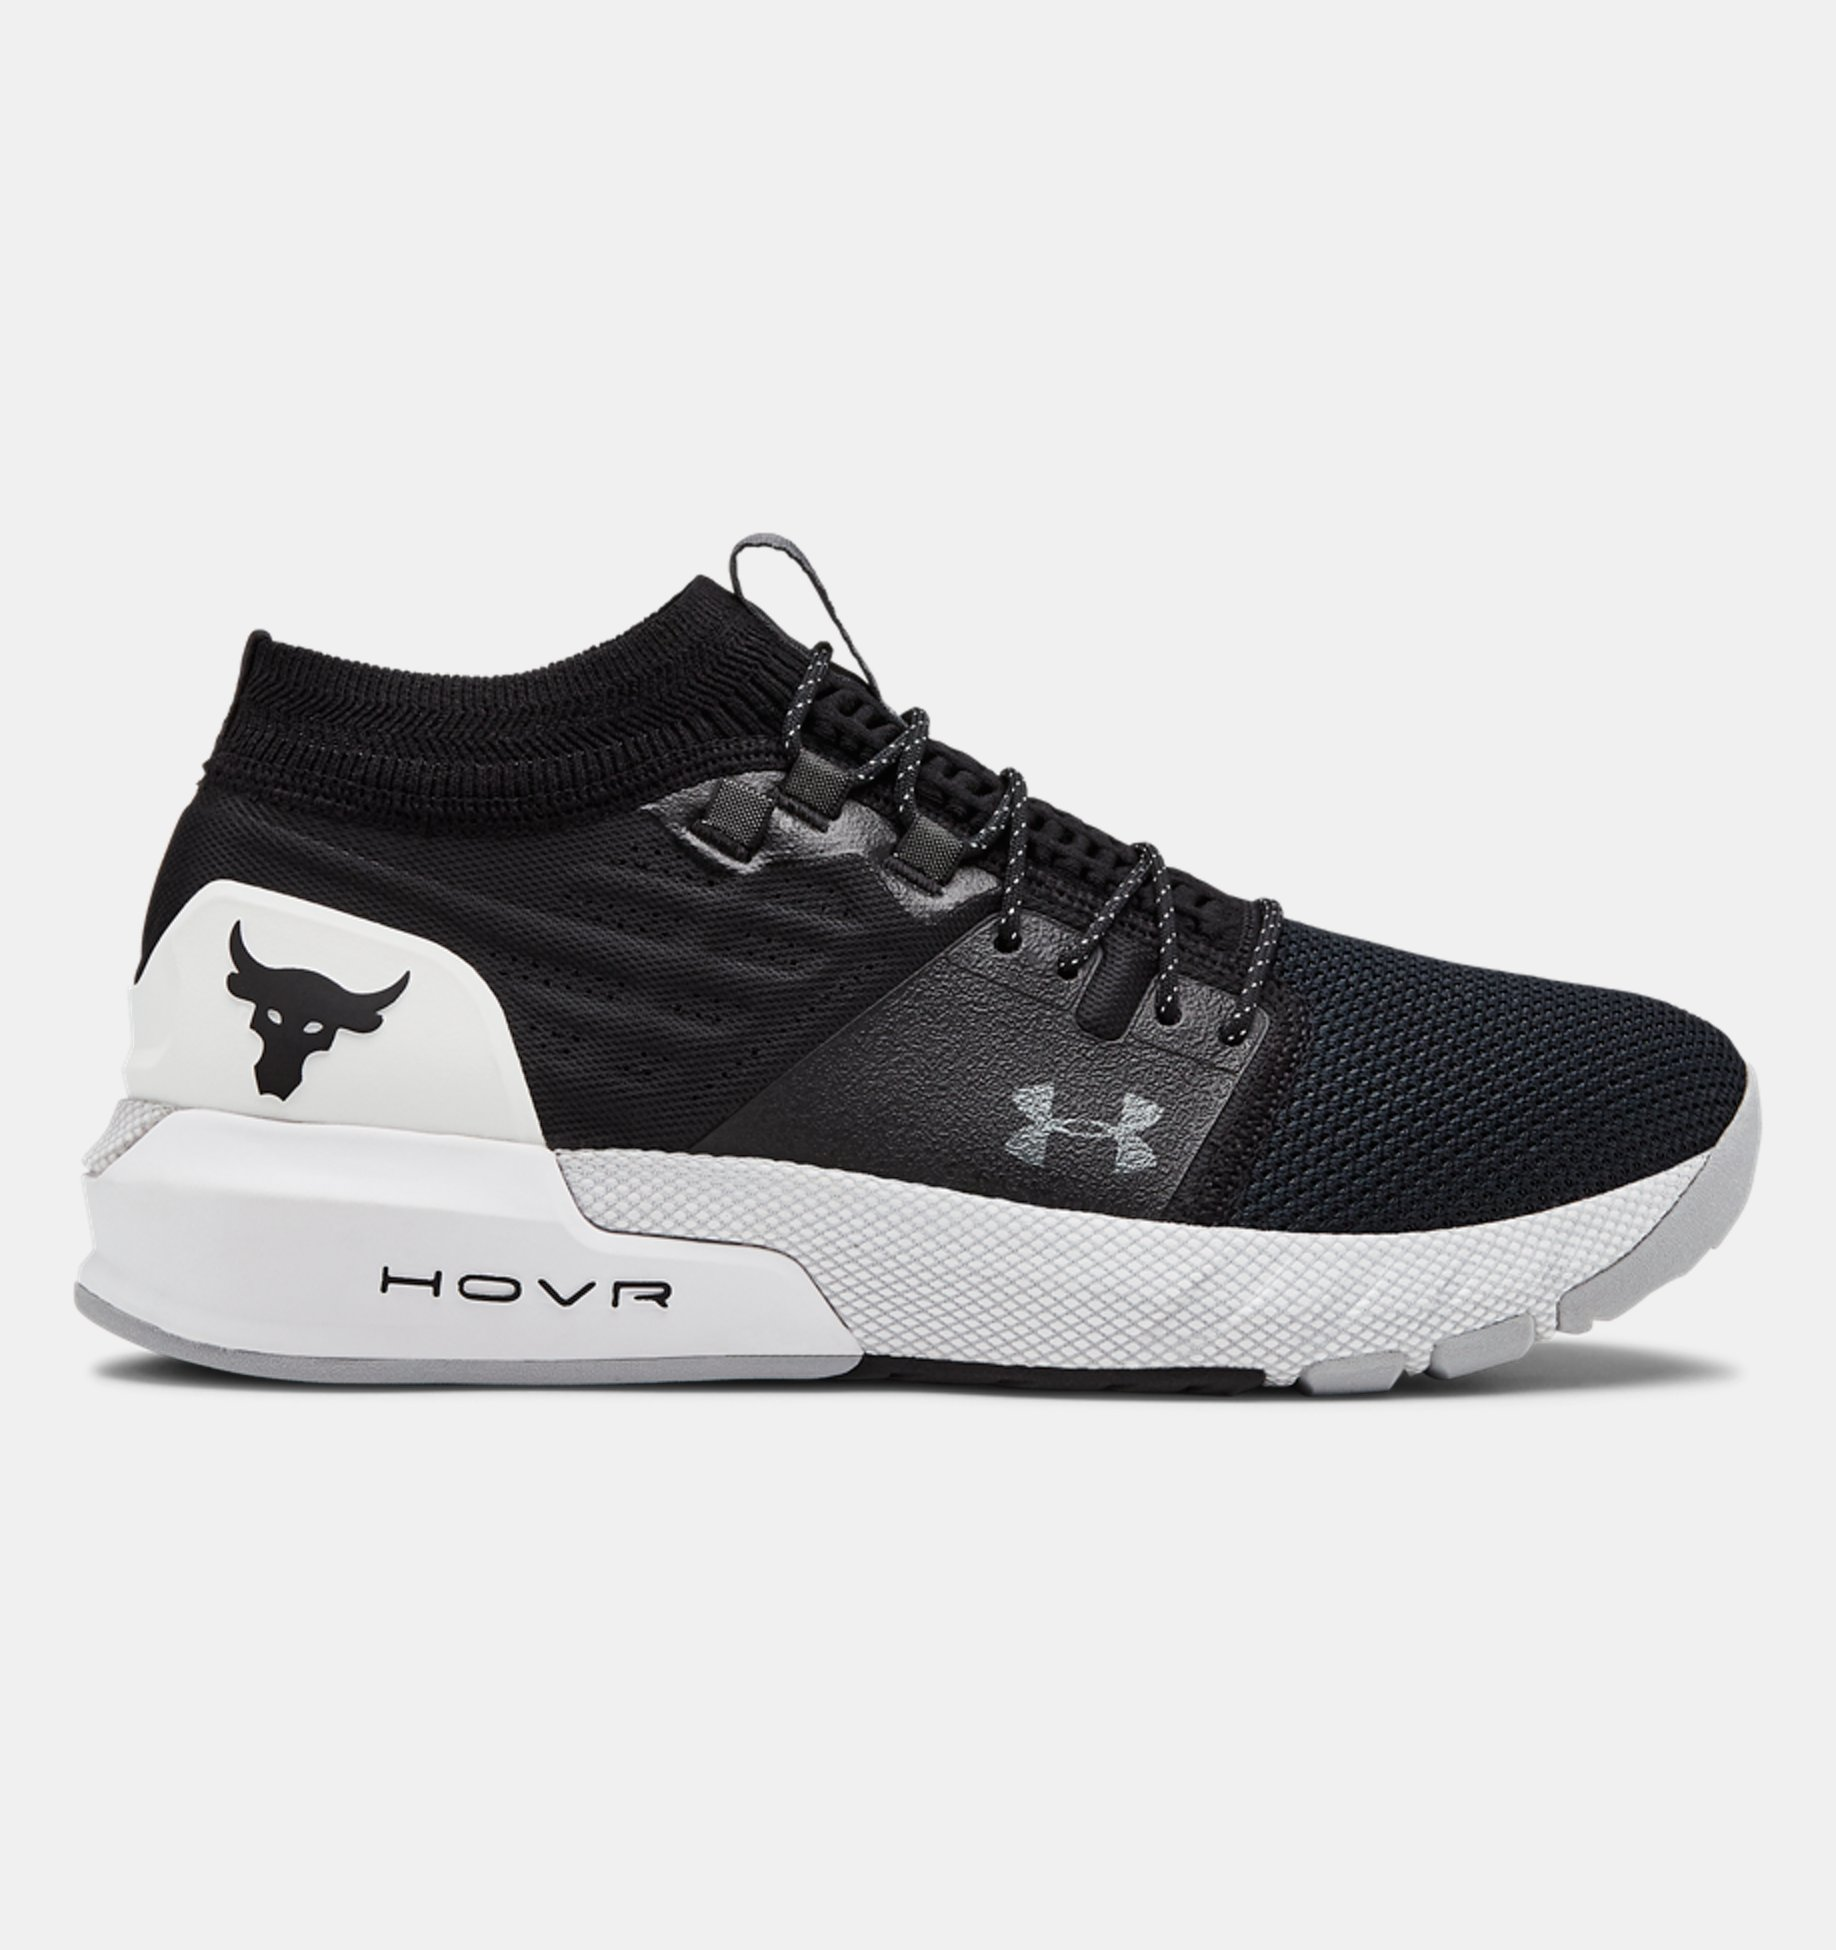 under armour the rock